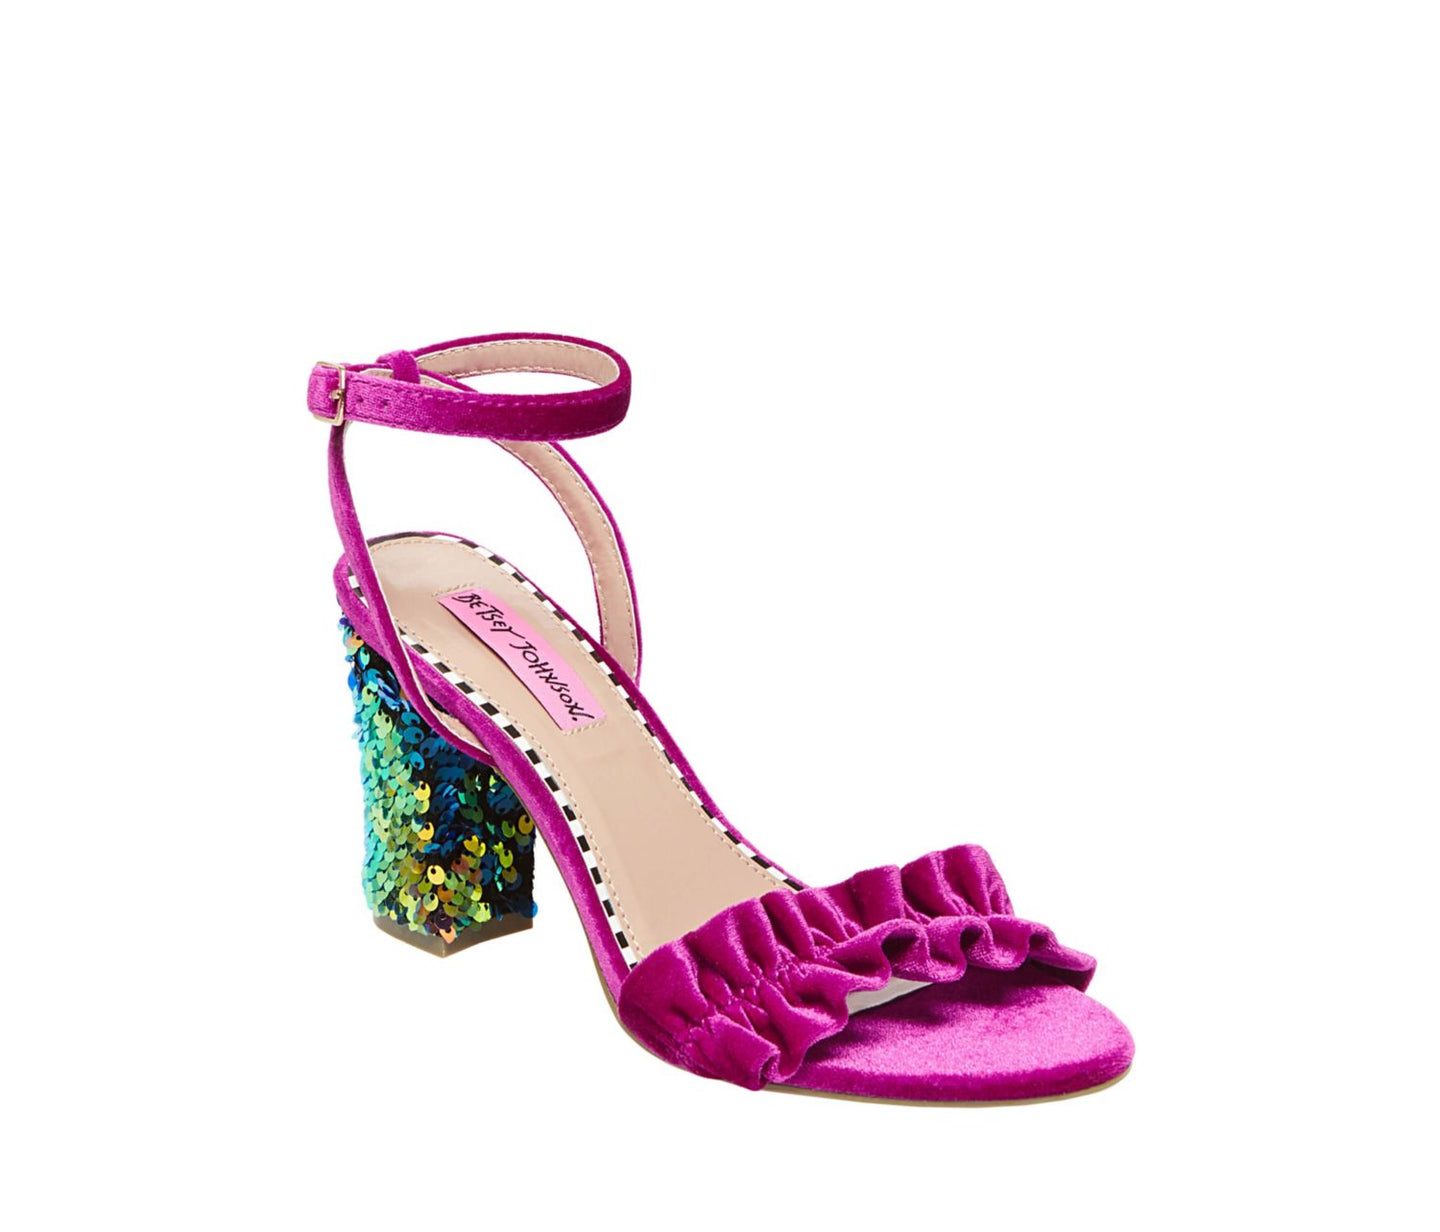 ILIANA MAGENTA - SHOES - Betsey Johnson